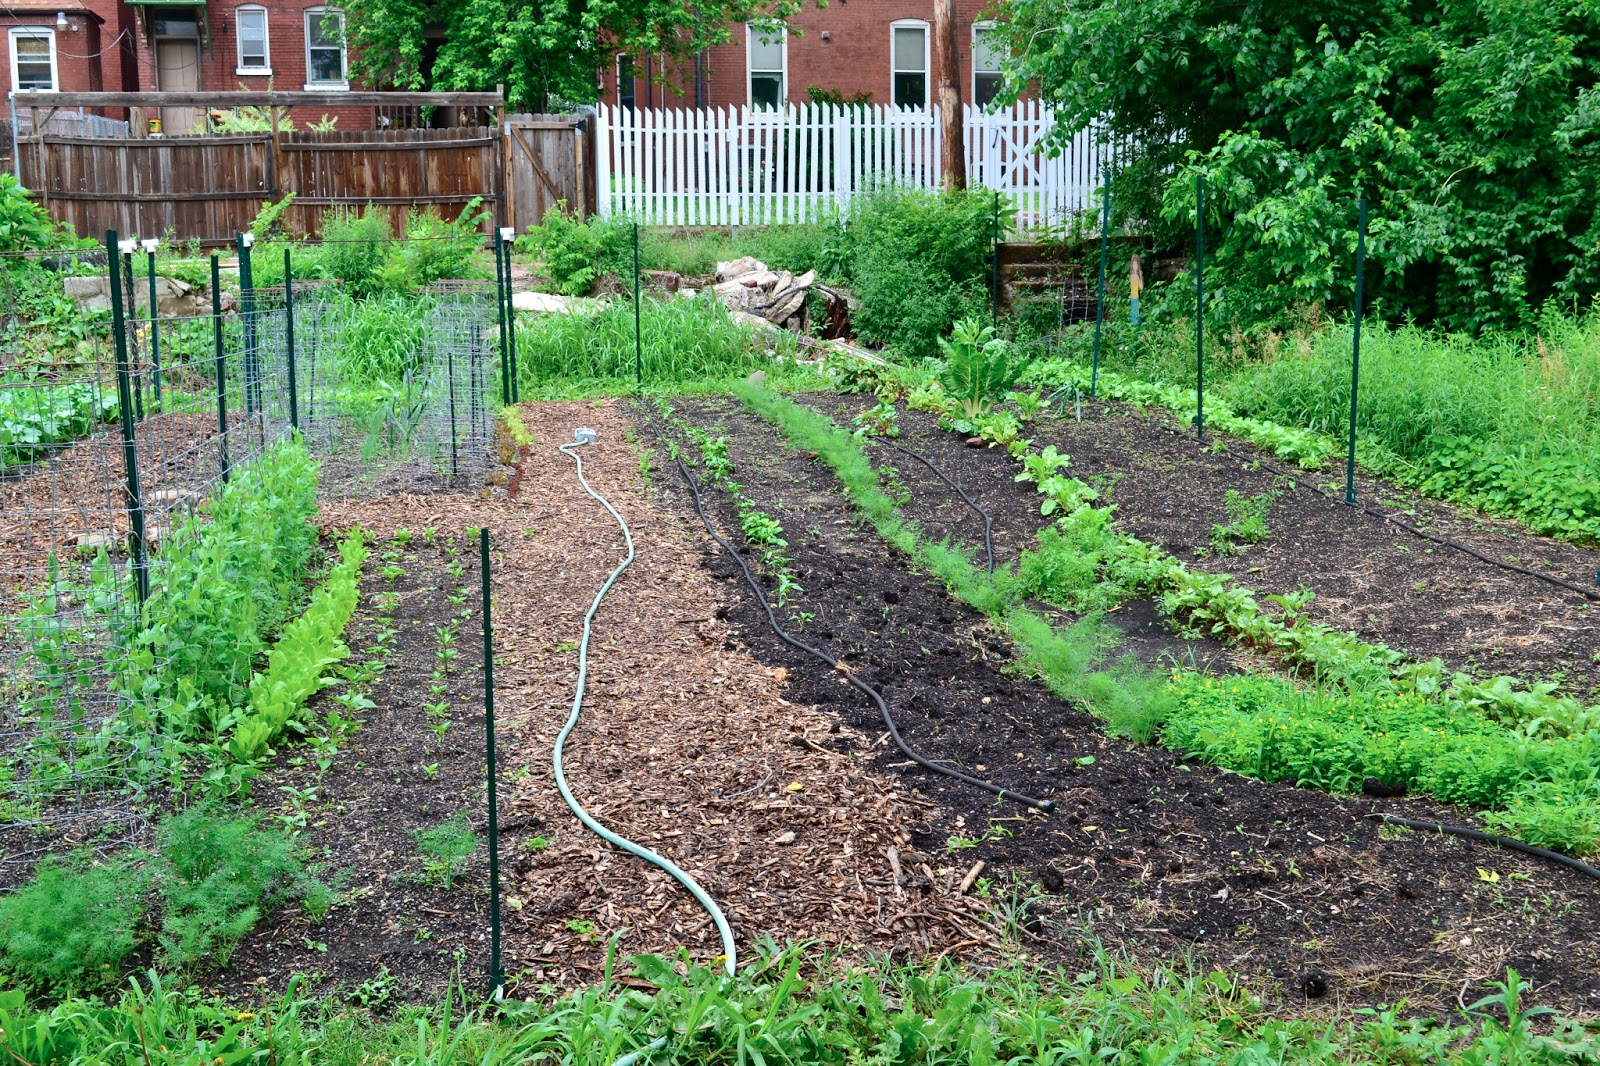 North St. Louis City community garden